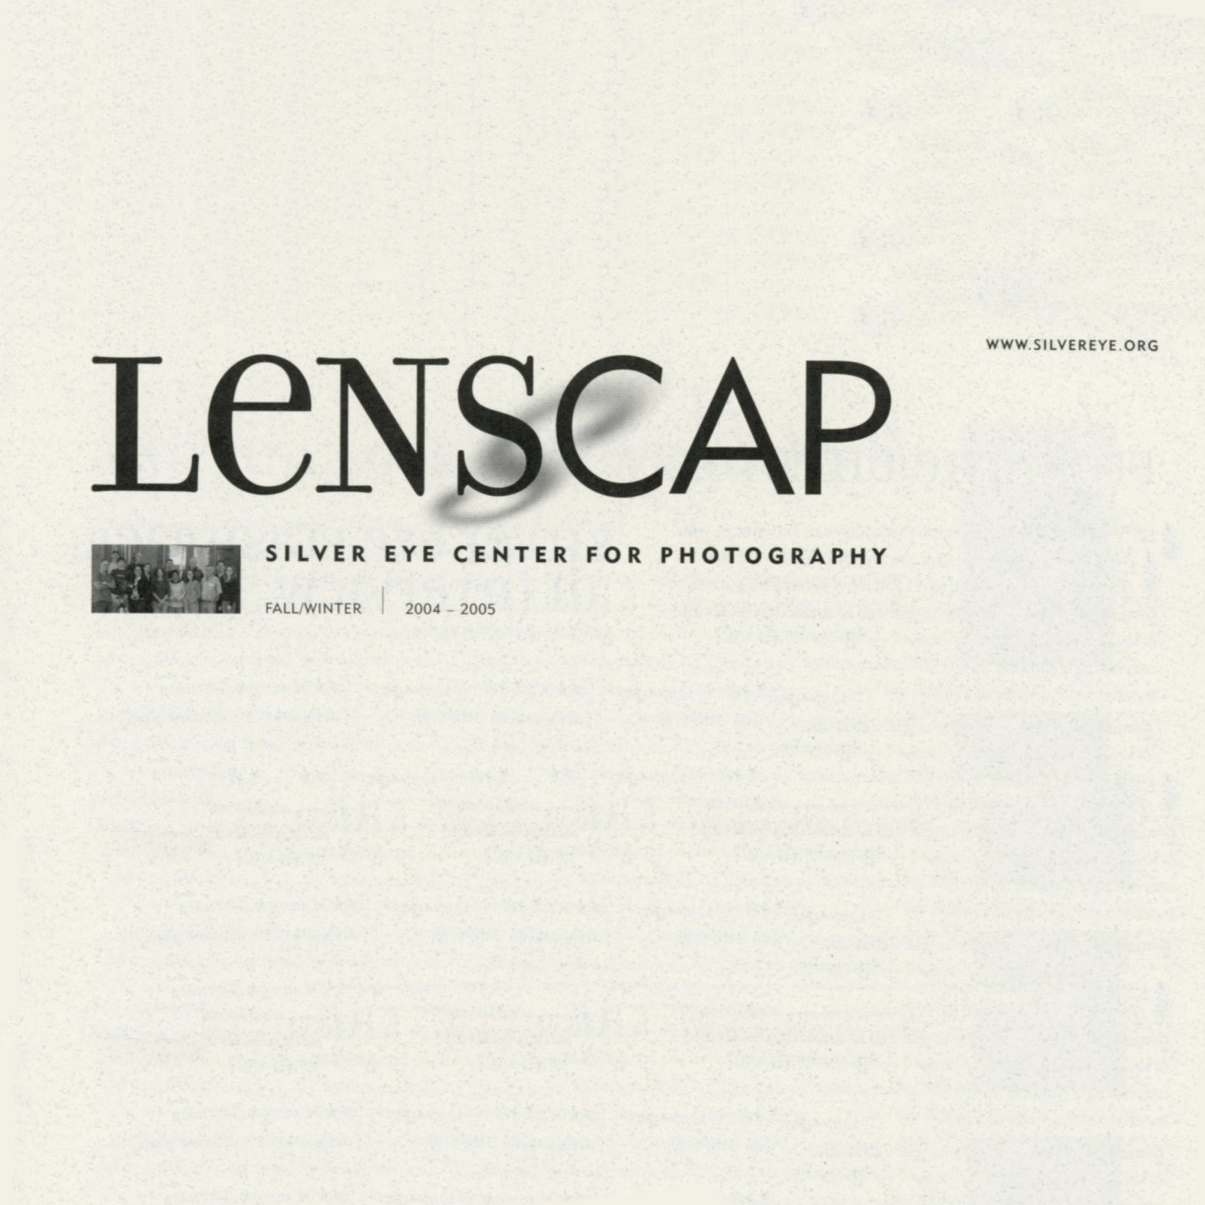 Book Review of  Tears of Stone: World War I Remembered    Lenscap  magazine, published by Silver Eye Center of Photography, Pittsburgh, PA, Fall/Winter 2004-2005 Review written by Sherrie Flick